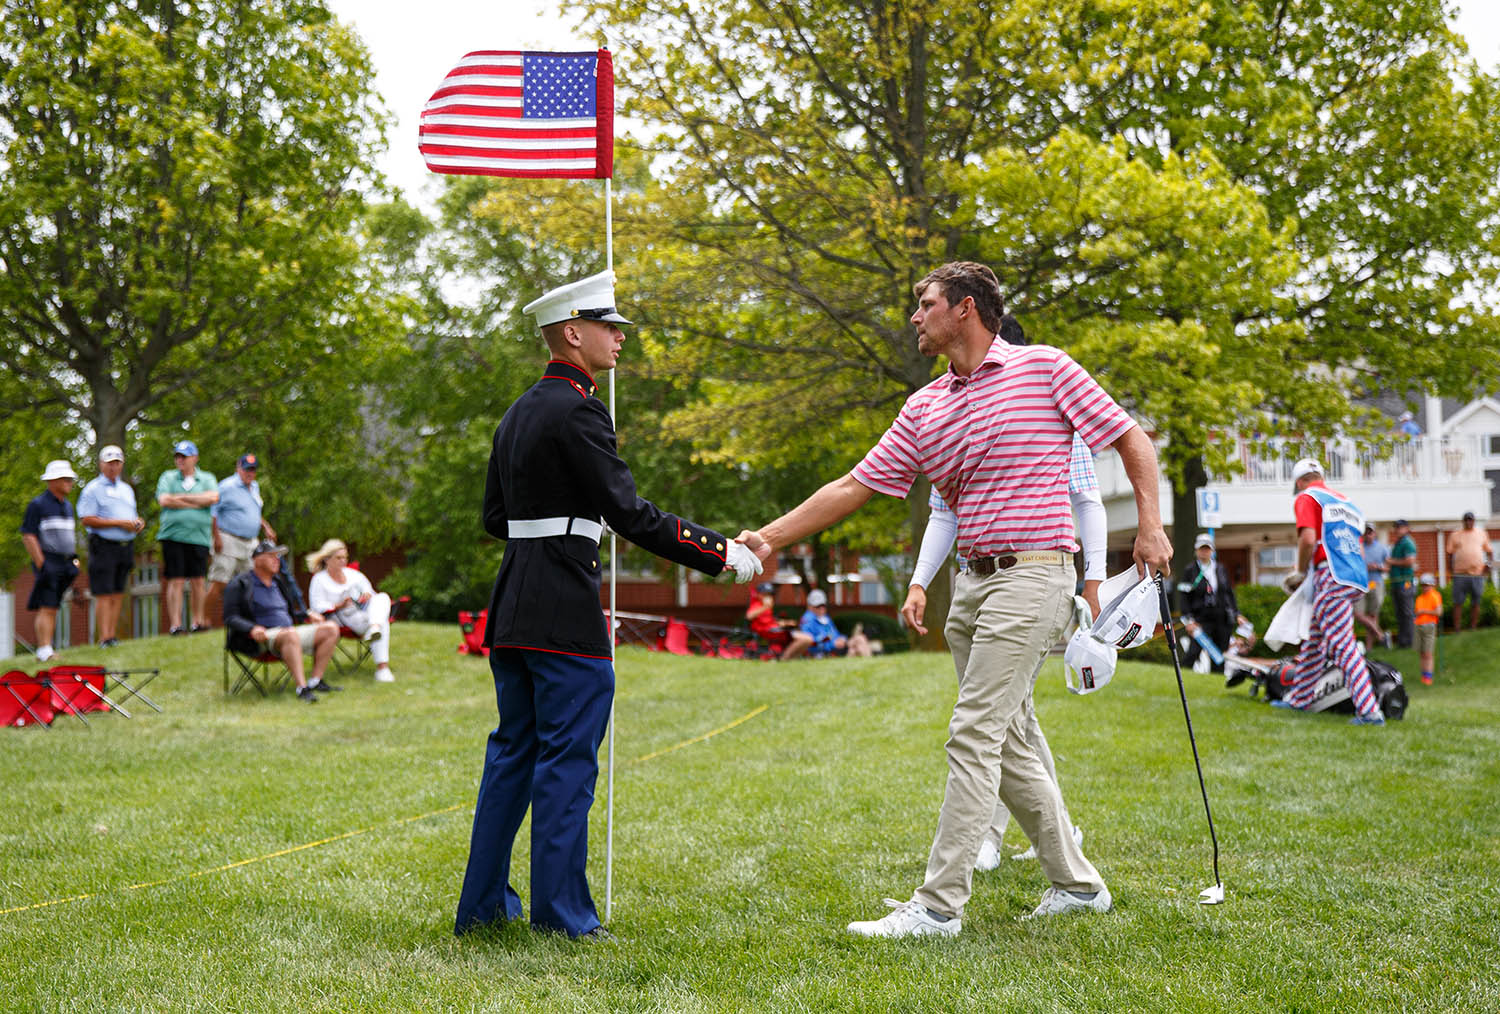 Marine Pvt. Jaden Maglioacchetti, of Quincy, Ill., shakes hands with Web.com Tour player Zachary Edmondson while holding the pin with an American Flag during Military Day on the second round of the Lincoln Land Championship presented by LRS at Panther Creek Country Club, Friday, June 14, 2019, in Springfield, Ill.  [Justin L. Fowler/The State Journal-Register]